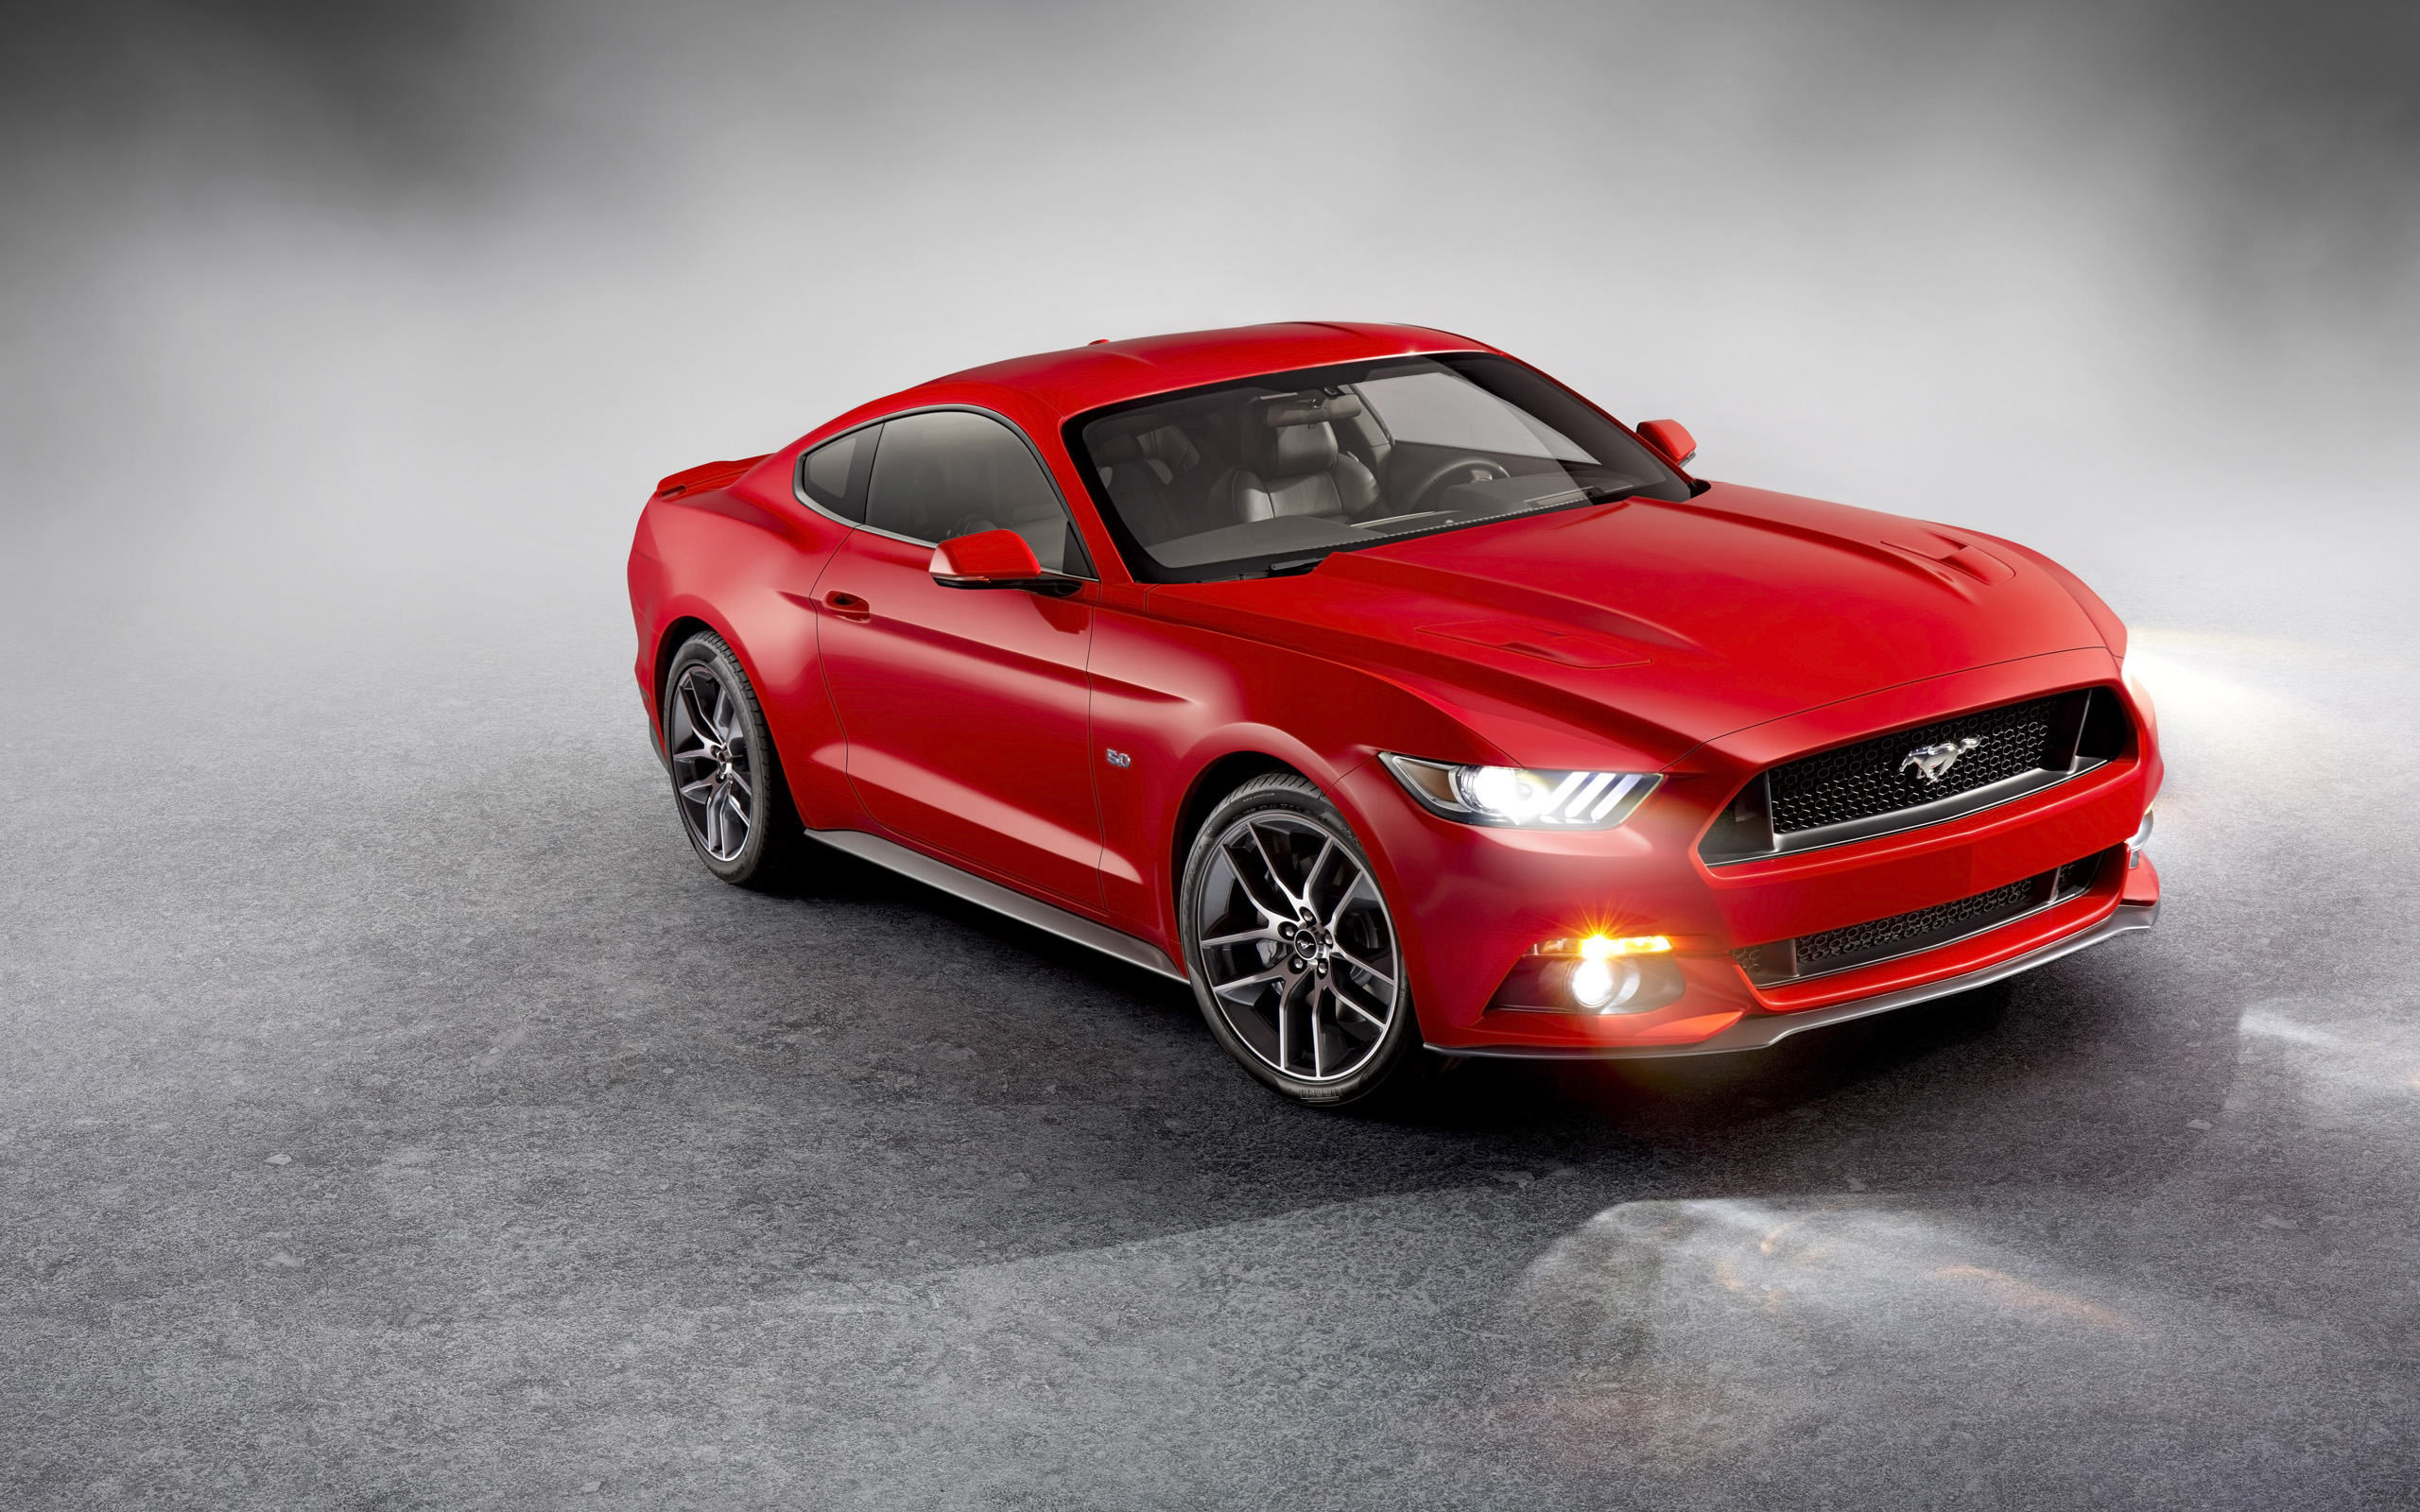 Mustang 2015 HD Wallpaper